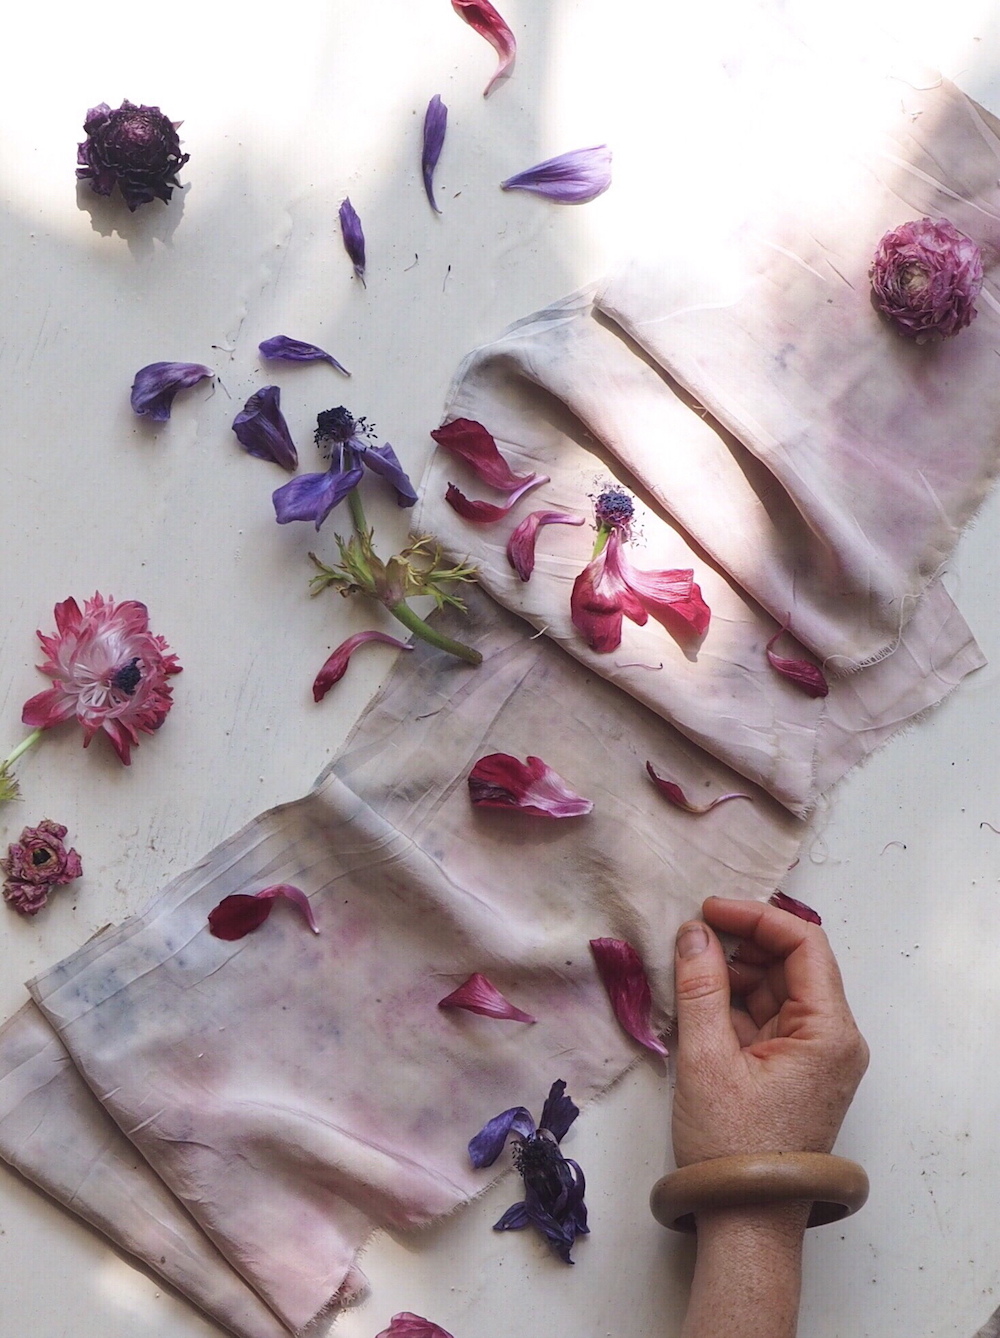 Botanically dyed vintage kimono sillk - dyed with rannunculus flowers. Ellie Beck Petalplum.jpeg